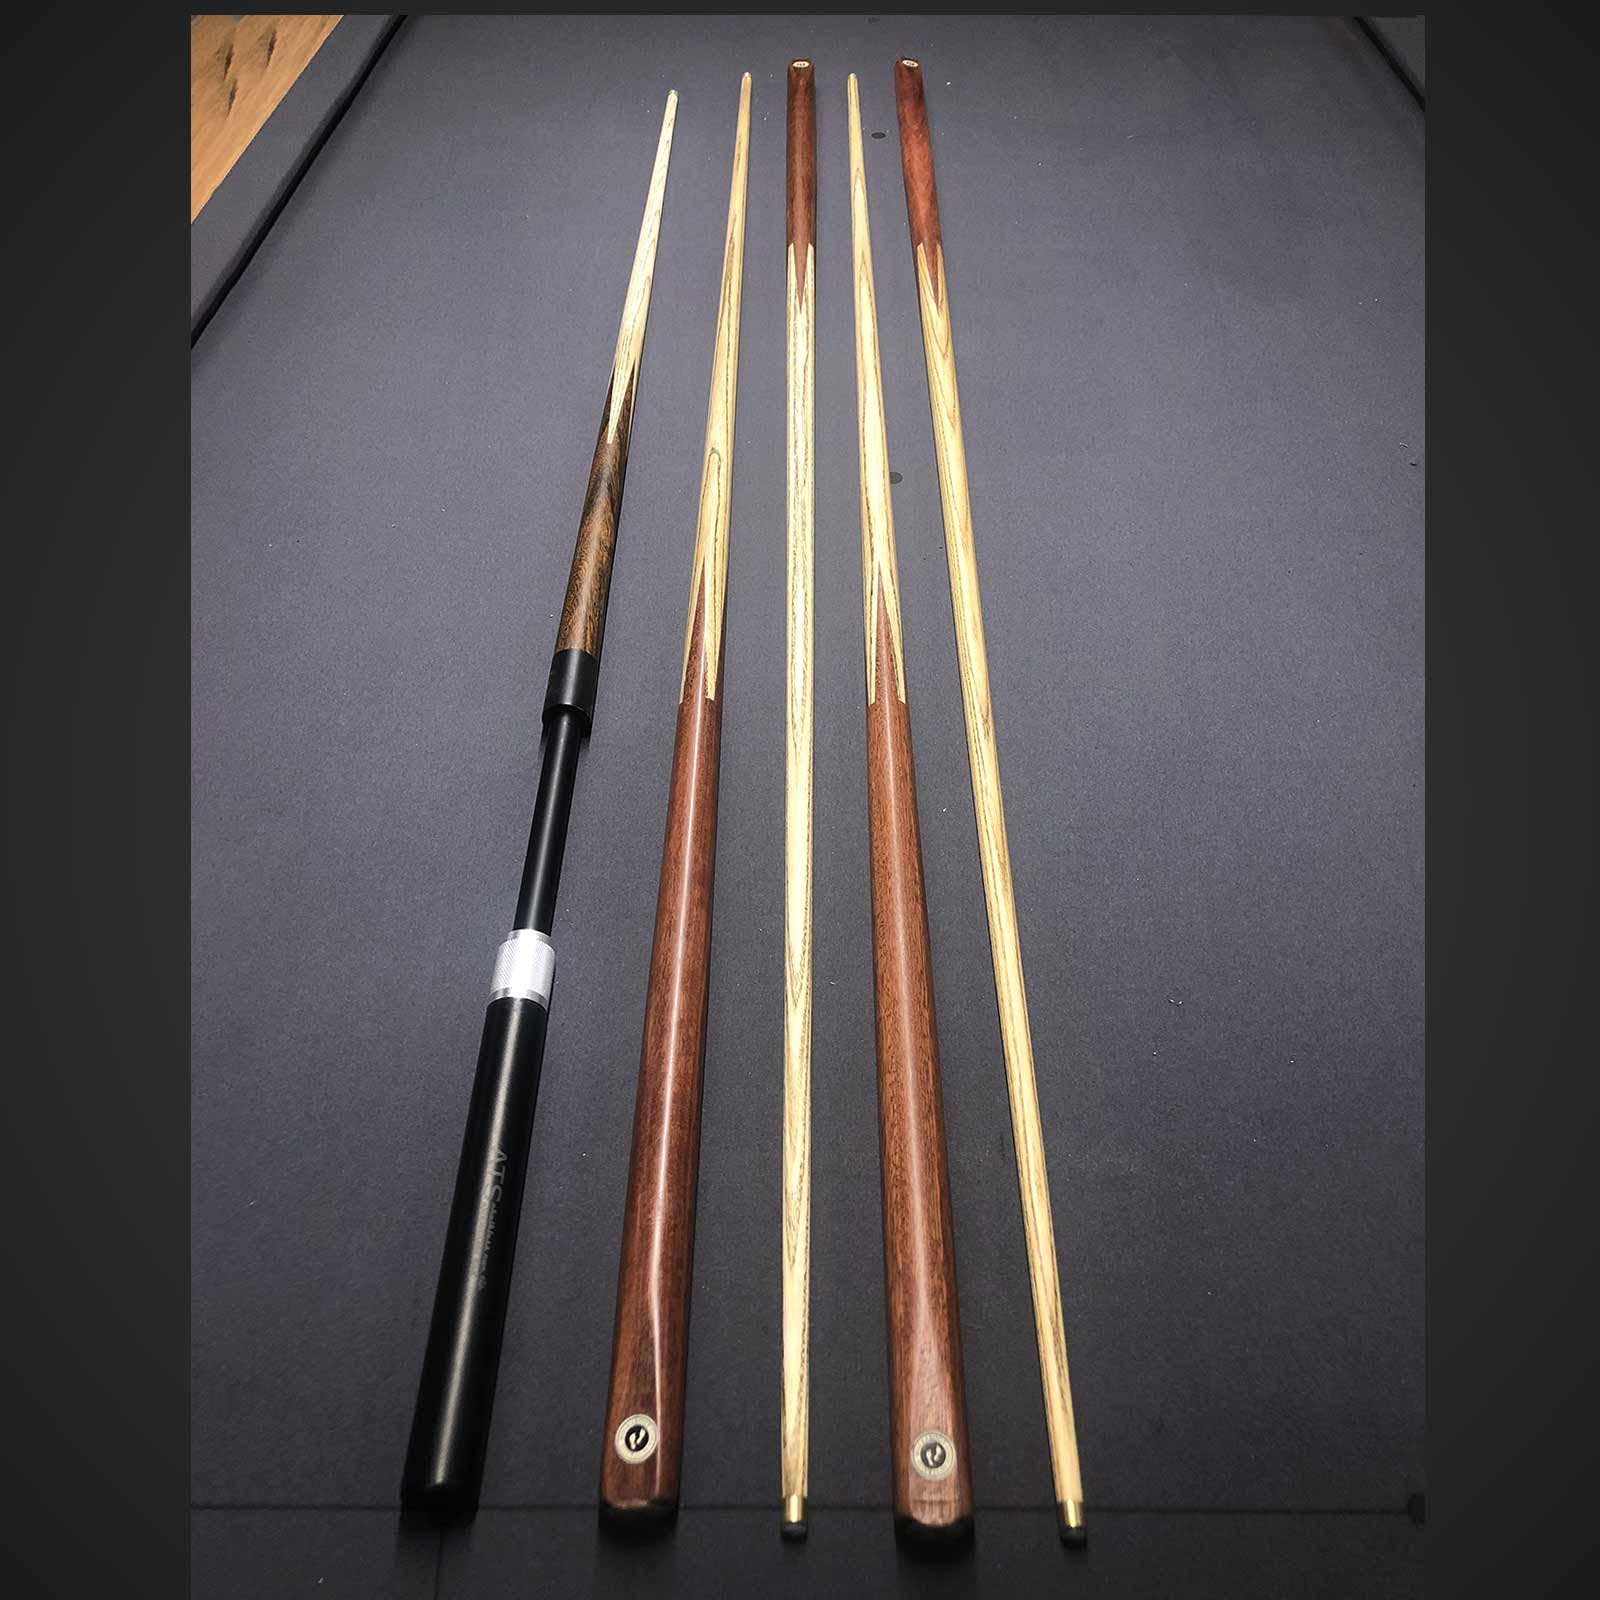 Pool Cue Value Pack With One 48 Inch Telescopic Cue